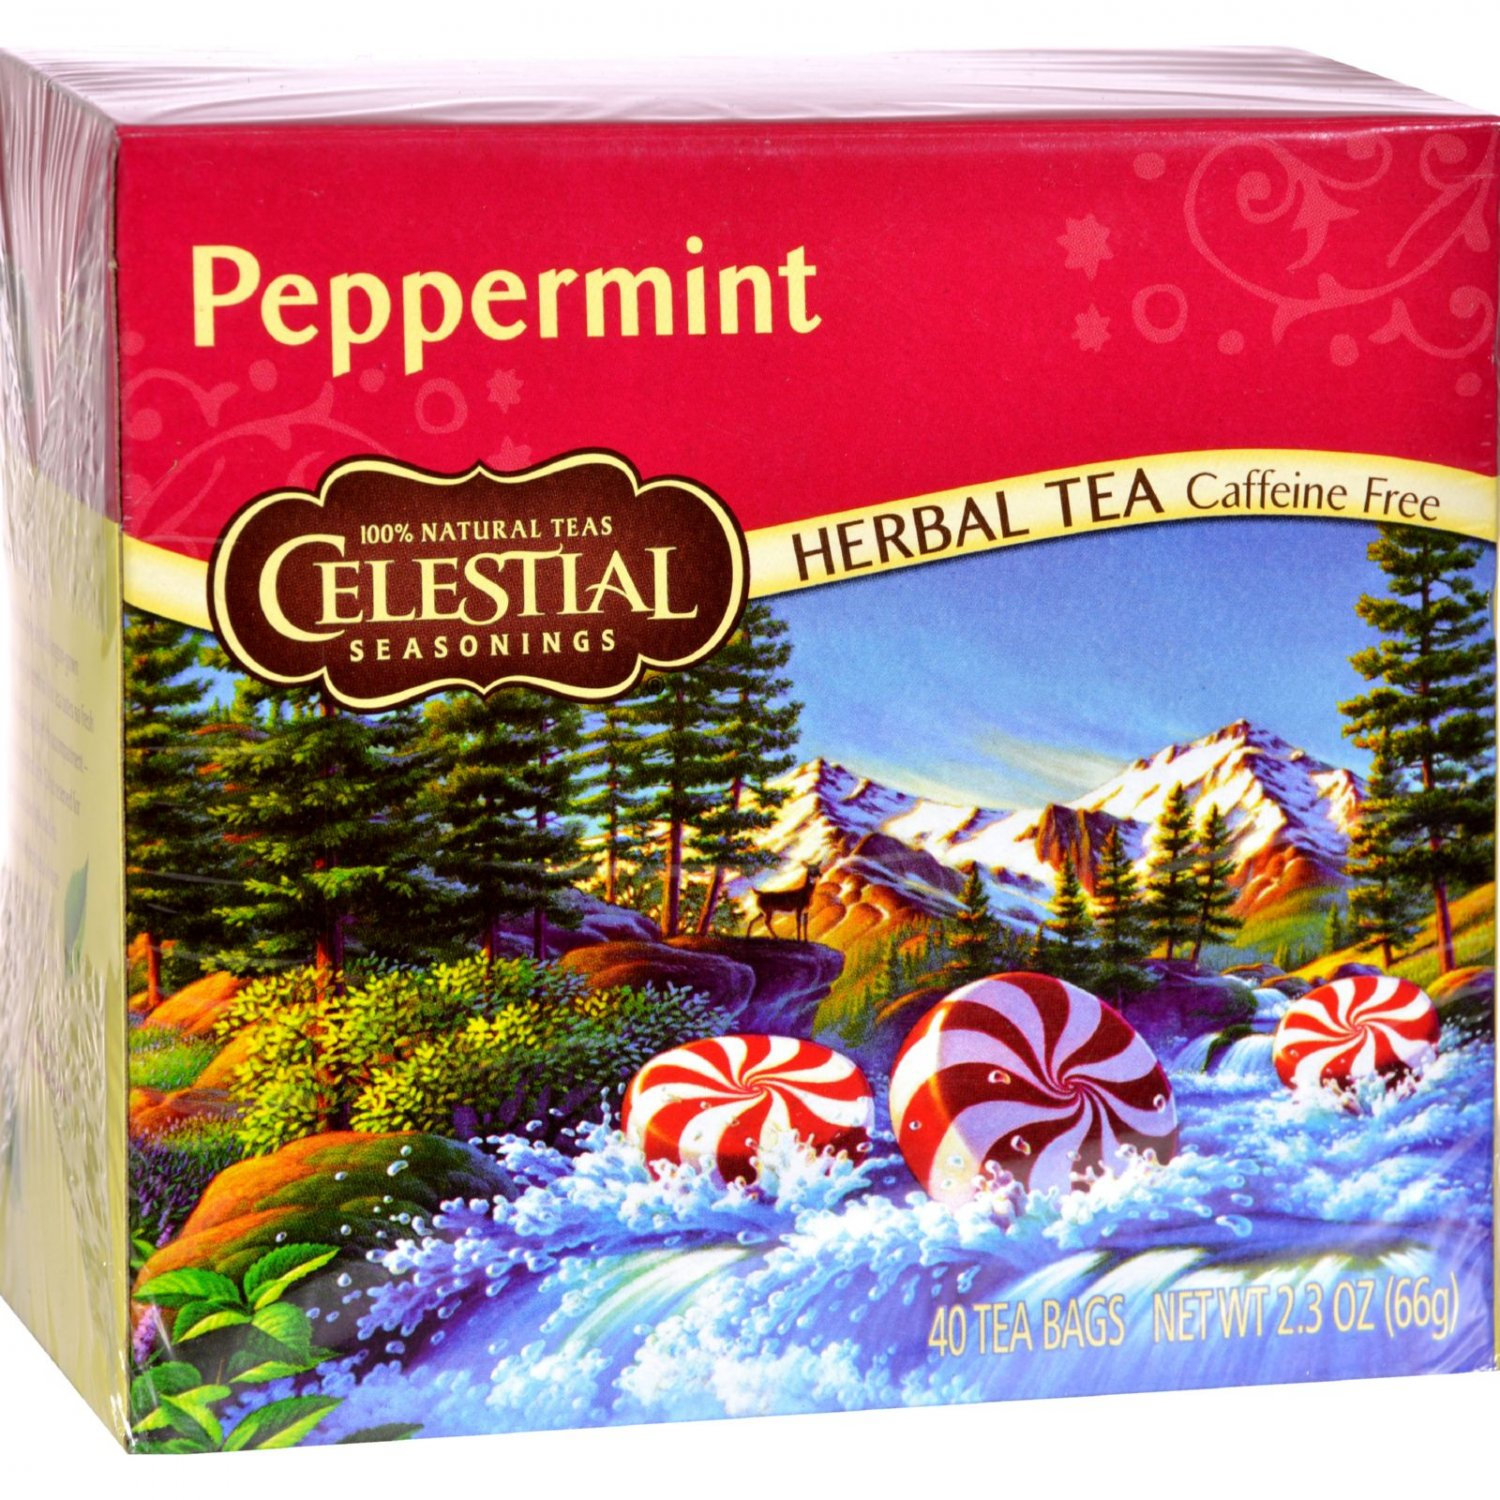 Celestial Seasonings Herbal Tea - Peppermint - 40 Bags (Pack of 3)